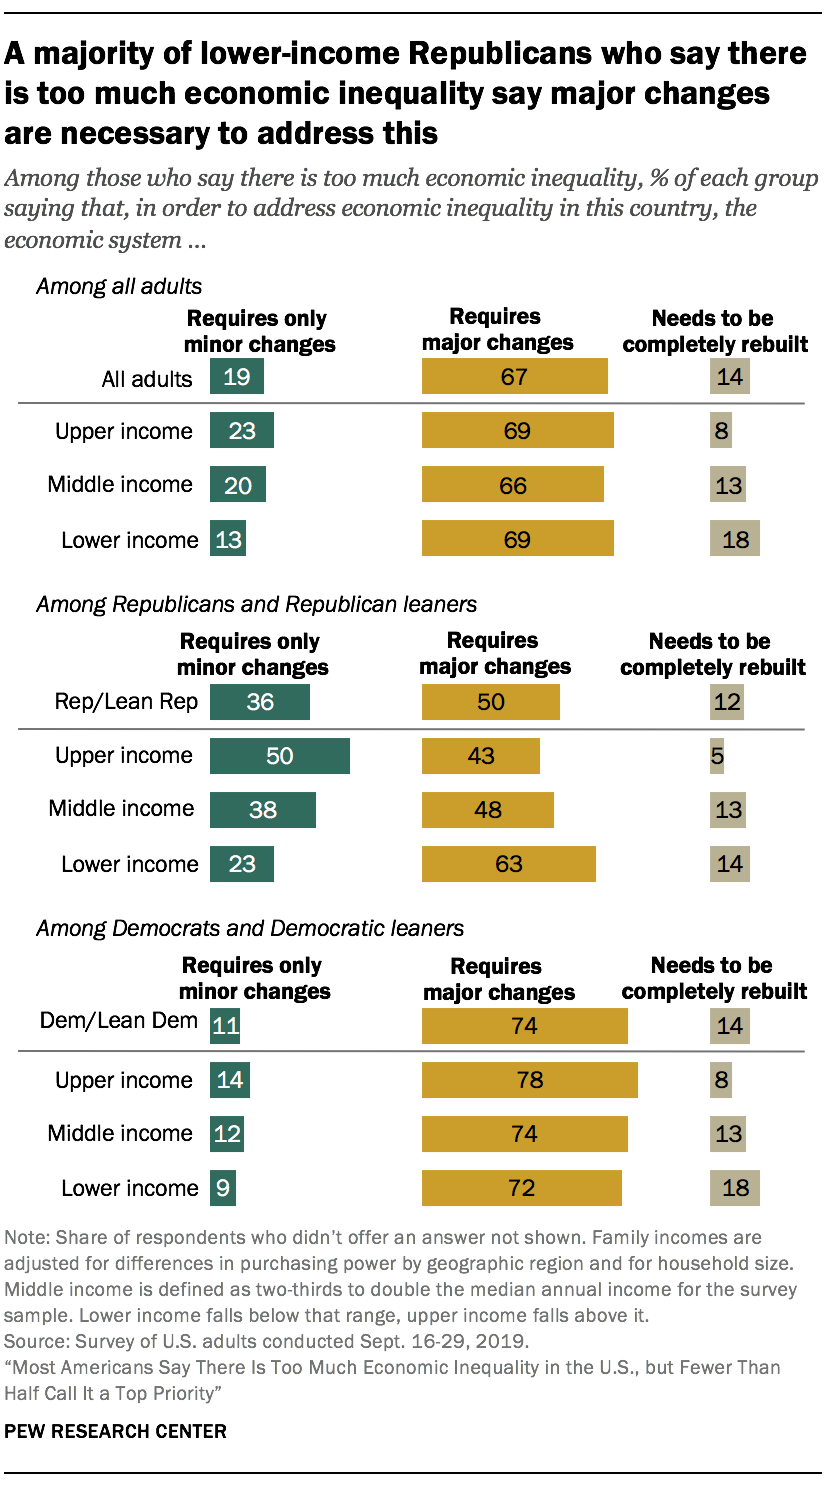 A majority of lower-income Republicans who say there is too much economic inequality say major changes are necessary to address this